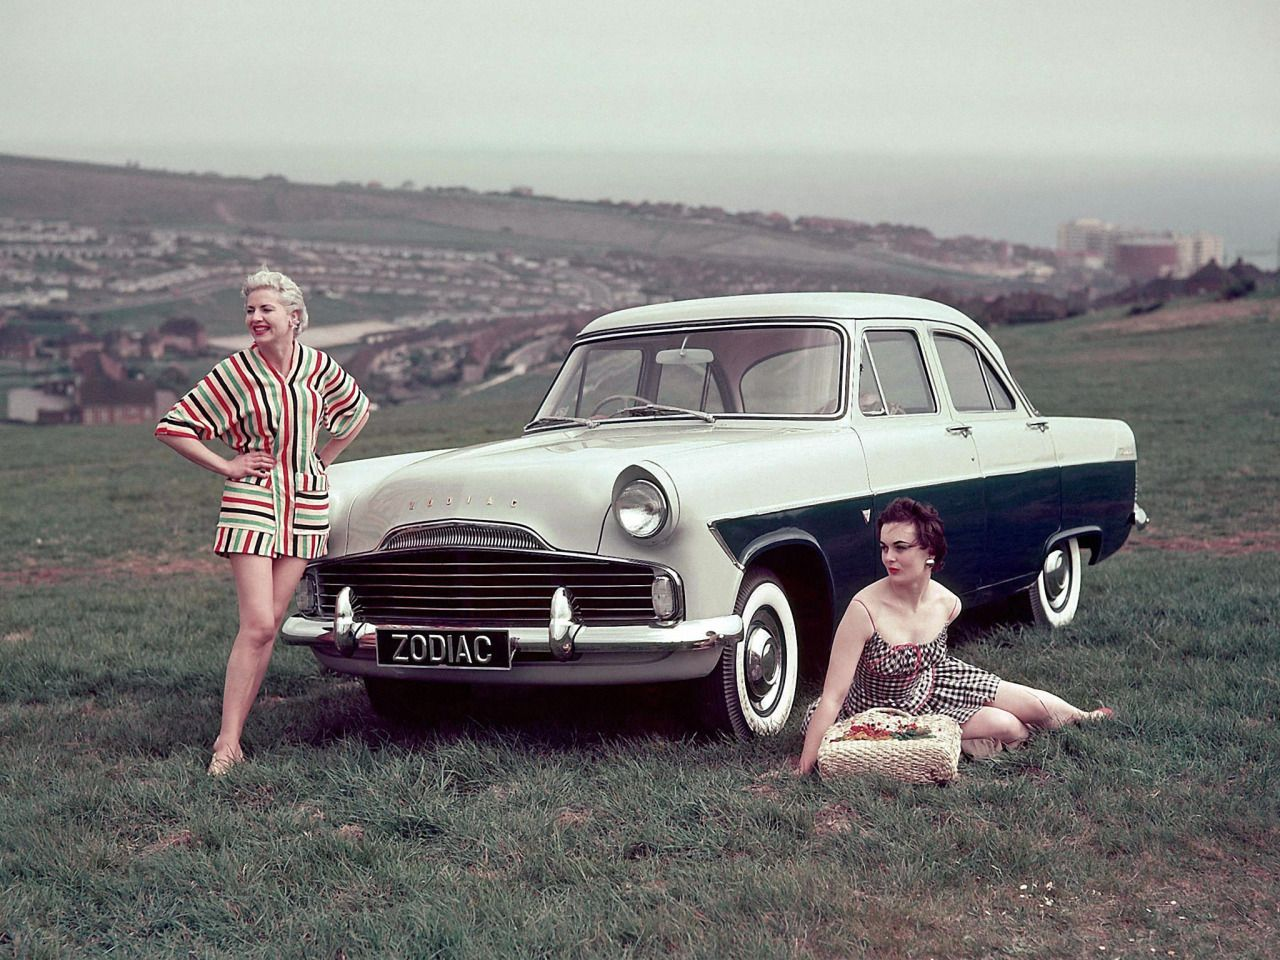 Ford Zodiac Ford classic cars